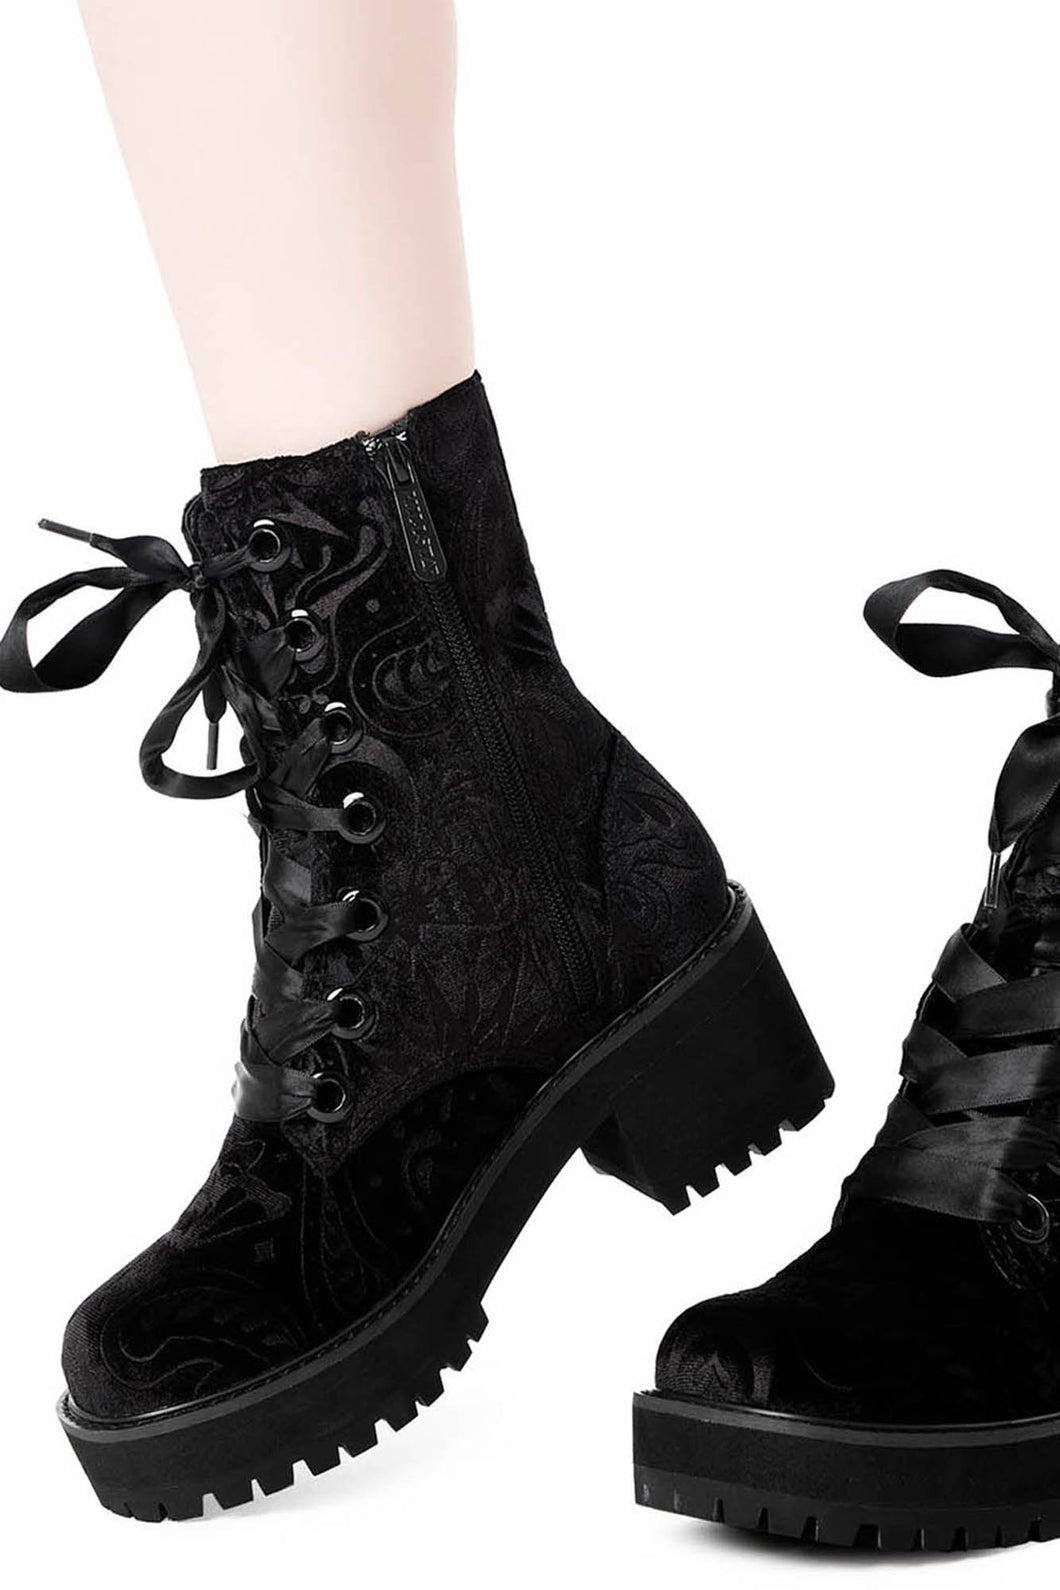 Killstar Heather Combat Boots - Kate's Clothing